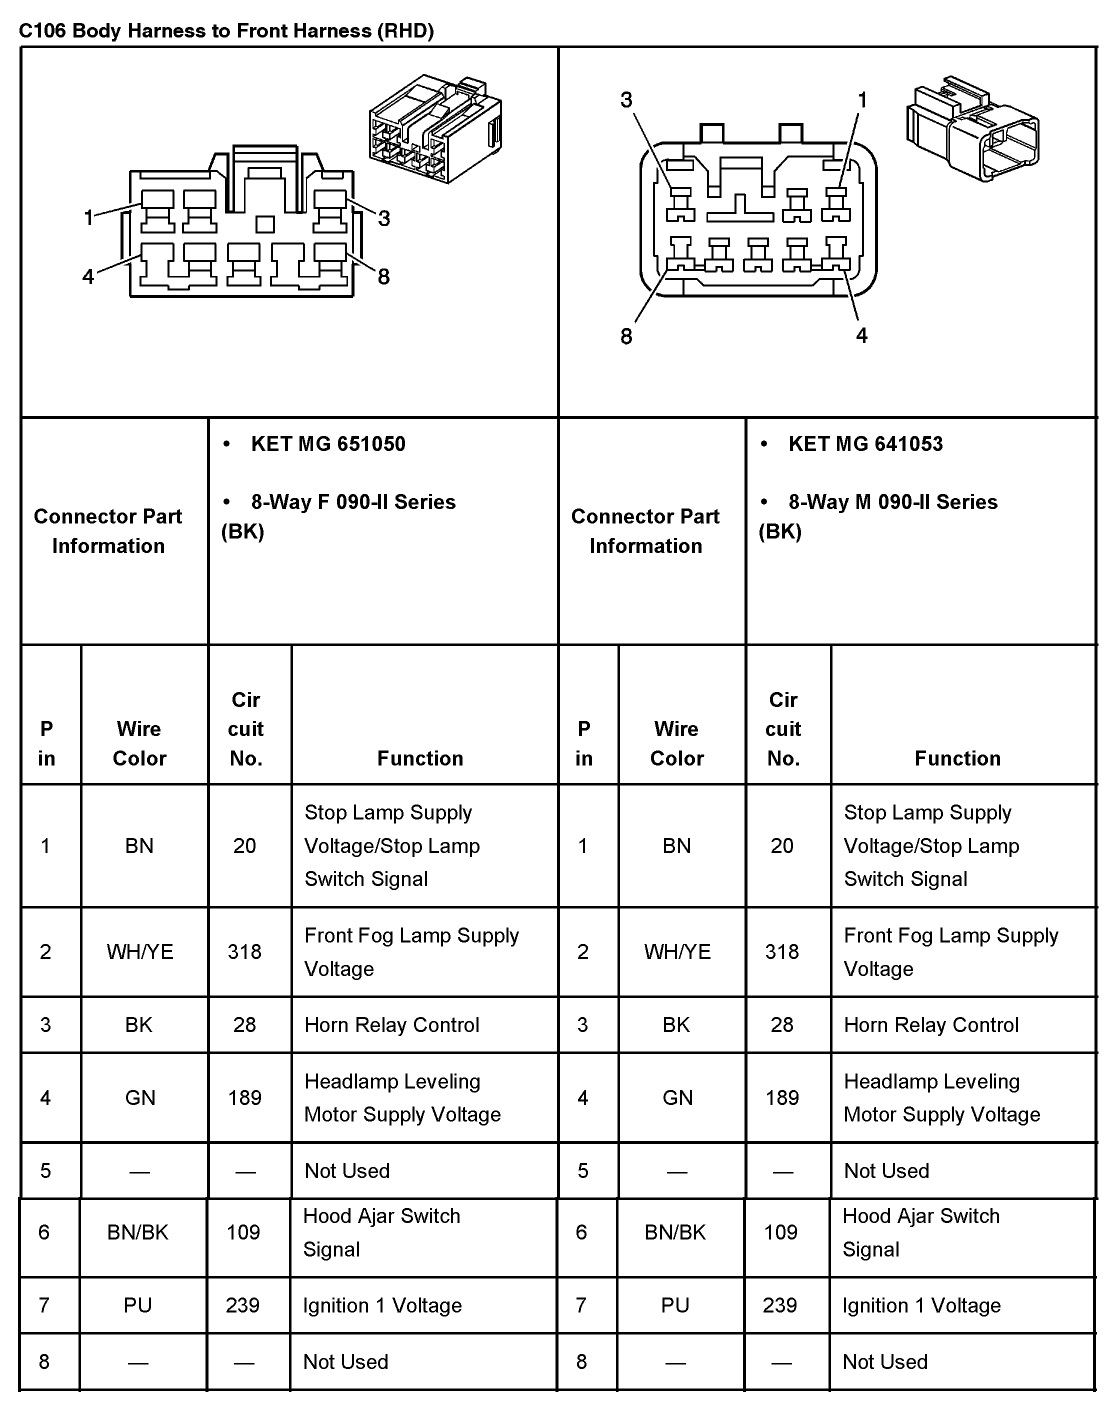 7331d1383704576 2005 aveo master connector list diagrams conn3 jpg 2005 chevy aveo fuse box wiring diagram simonand 2007 chevy aveo fuse box diagram at gsmx.co